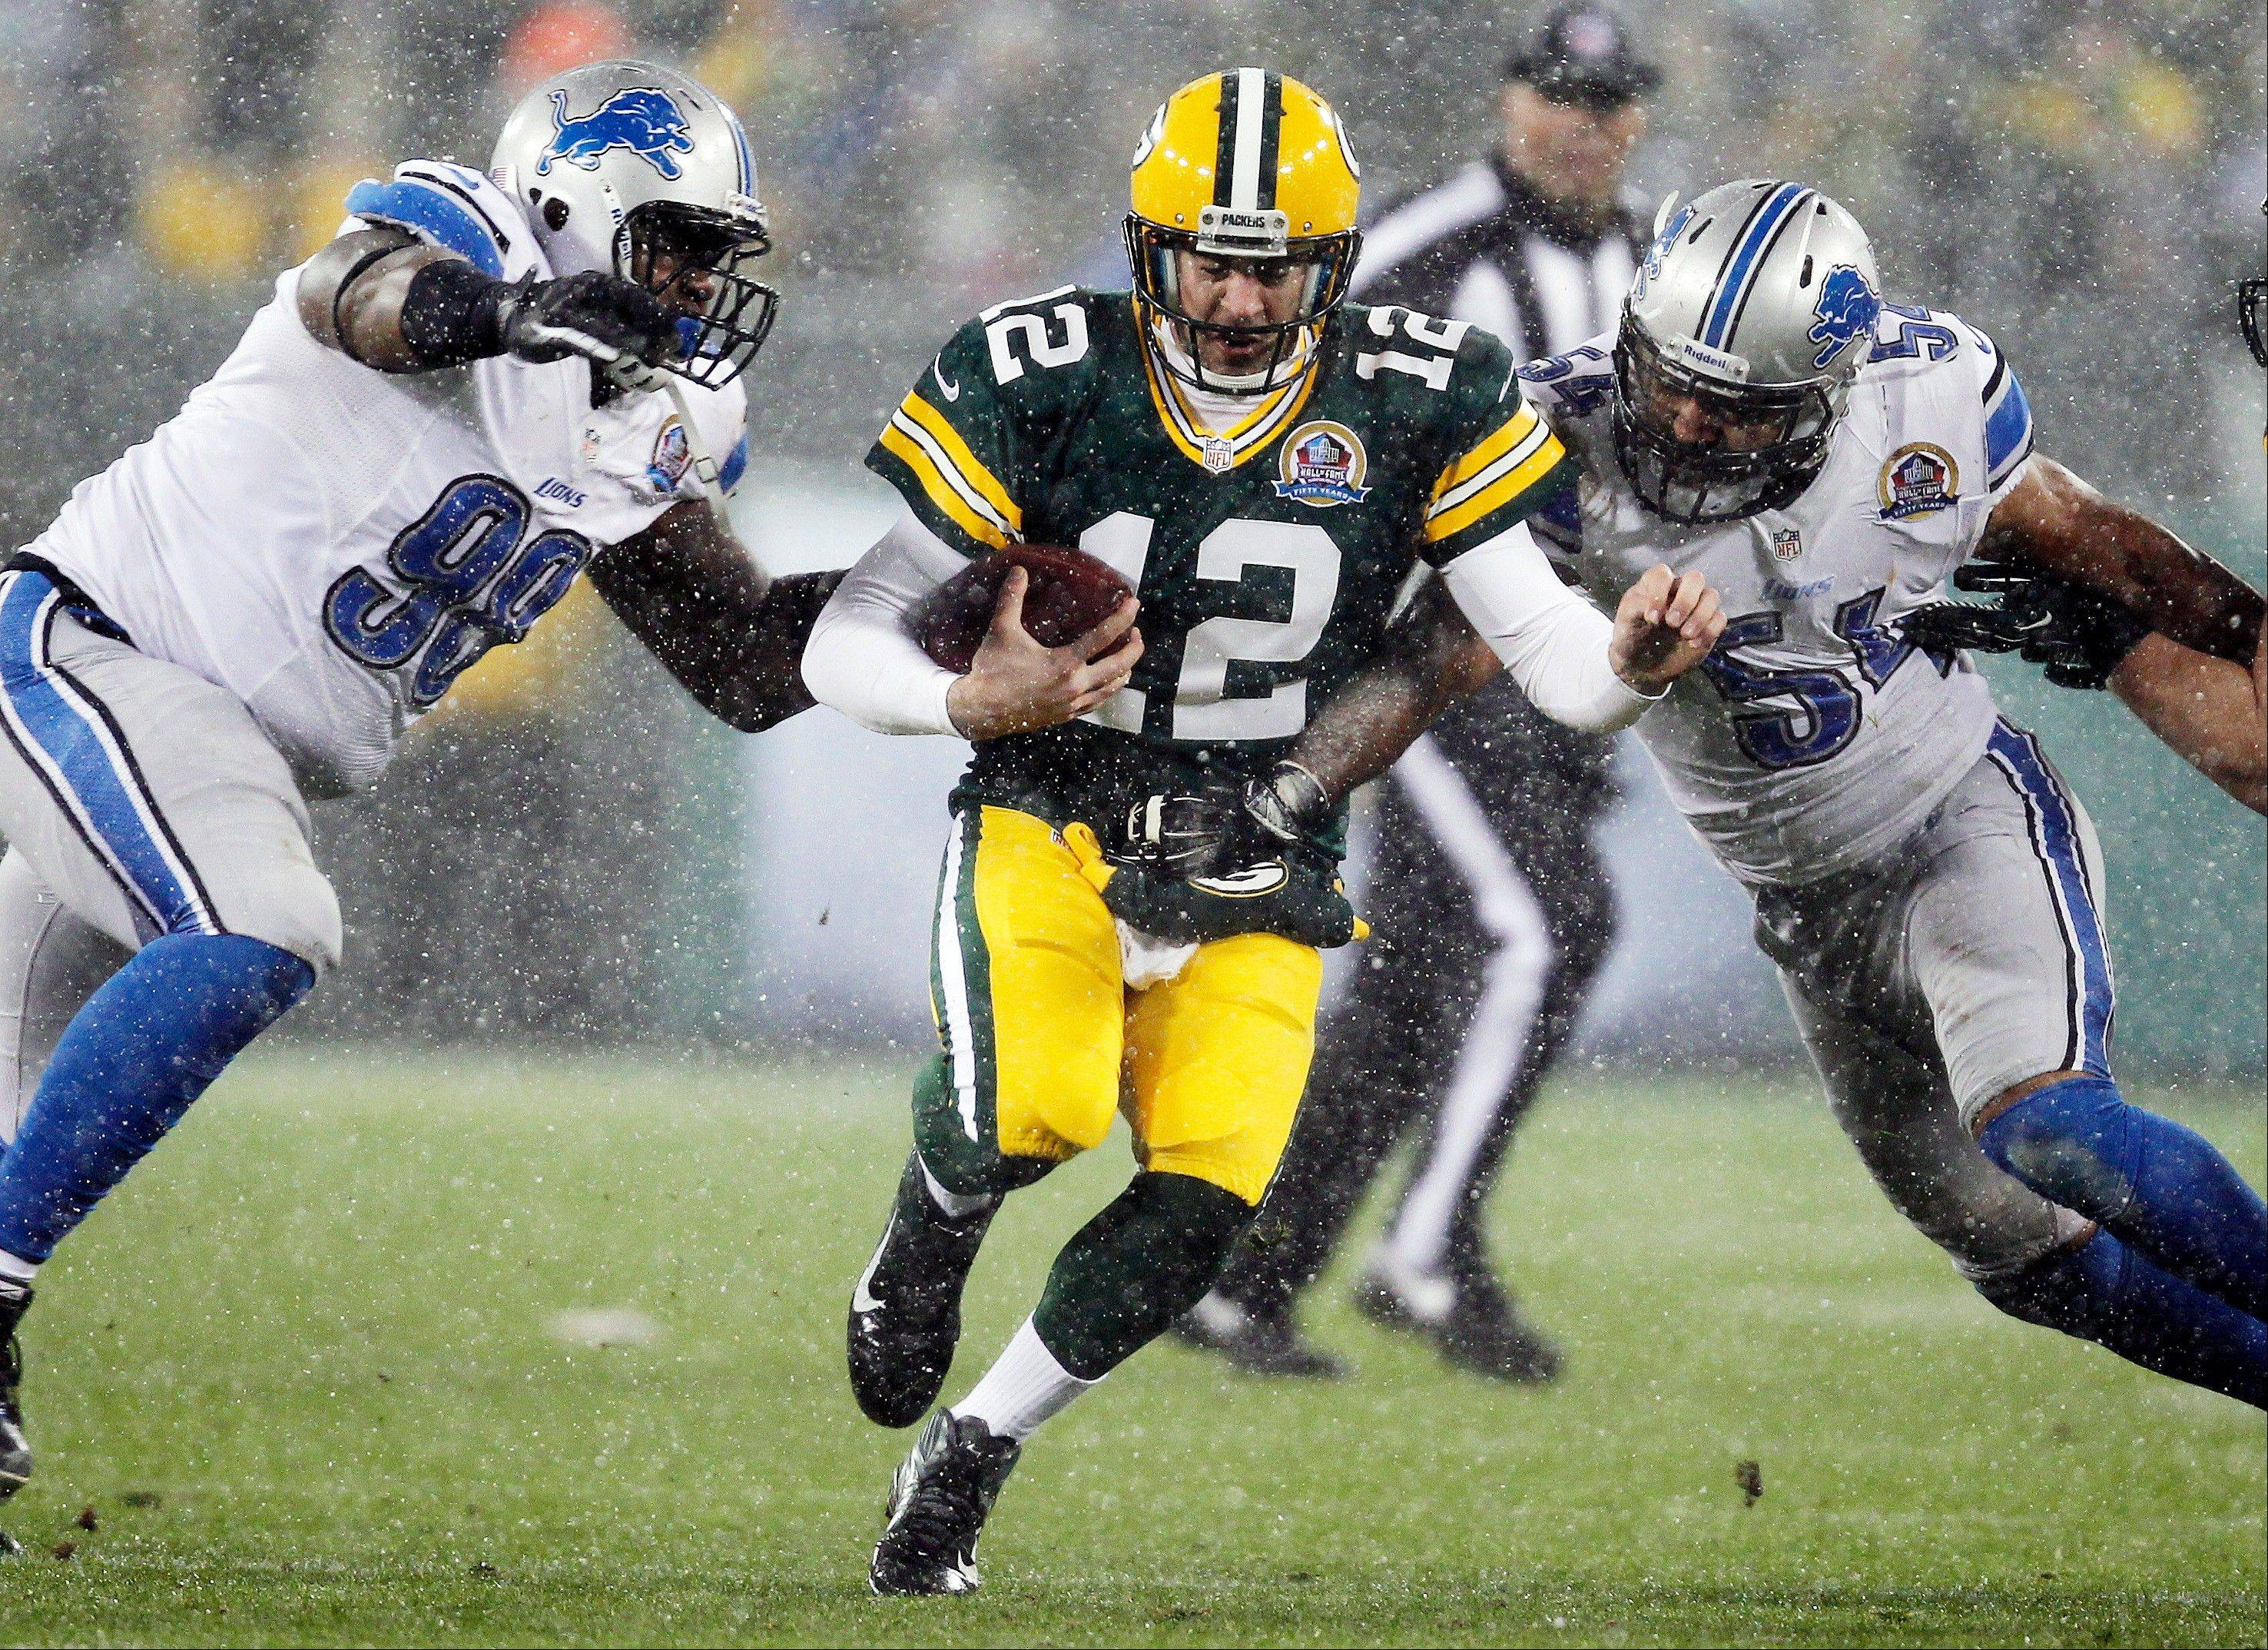 Green Bay Packers quarterback Aaron Rodgers (12) runs for yardage between Detroit Lions' Nick Fairley (98) and DeAndre Levy (54) during an NFL football game Sunday in Green Bay, Wis. NBC broadcast the game nationally.